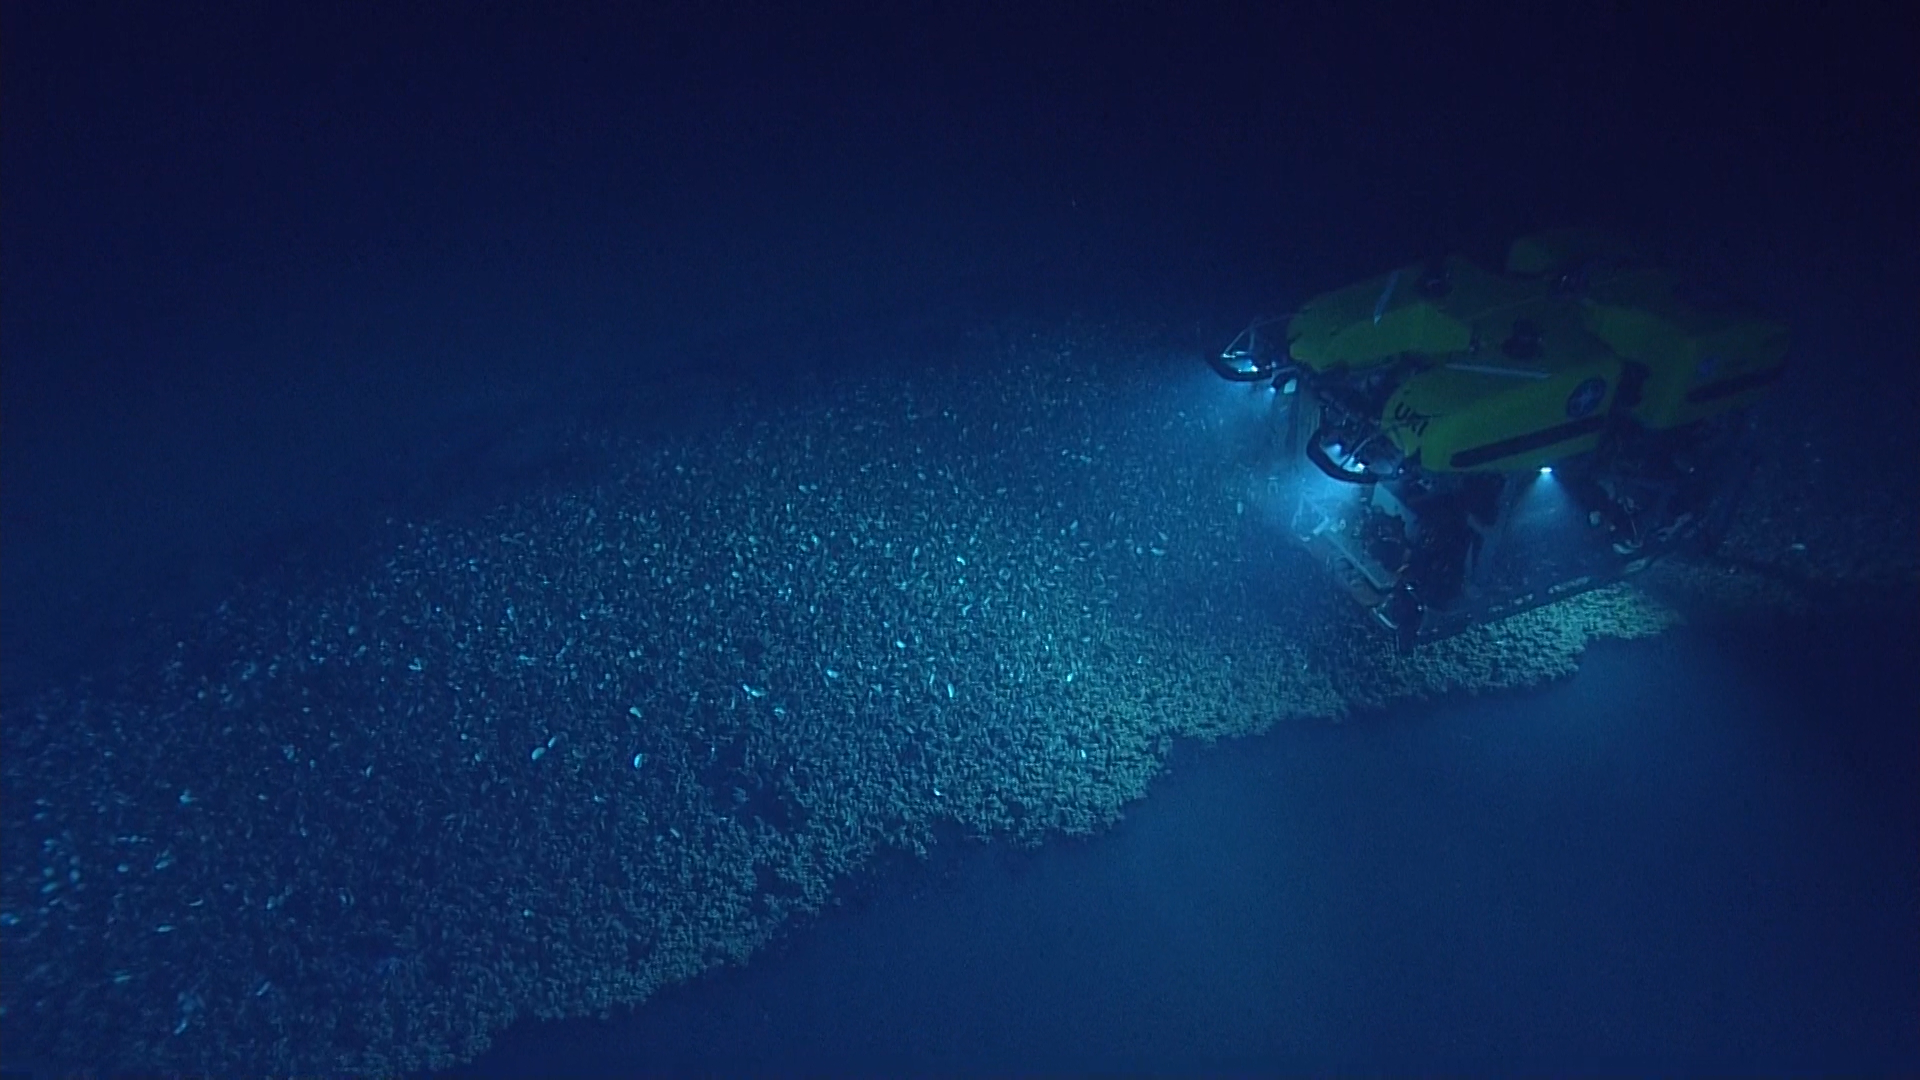 Top 5 Highlights of Deep Sea Exploration in 2017